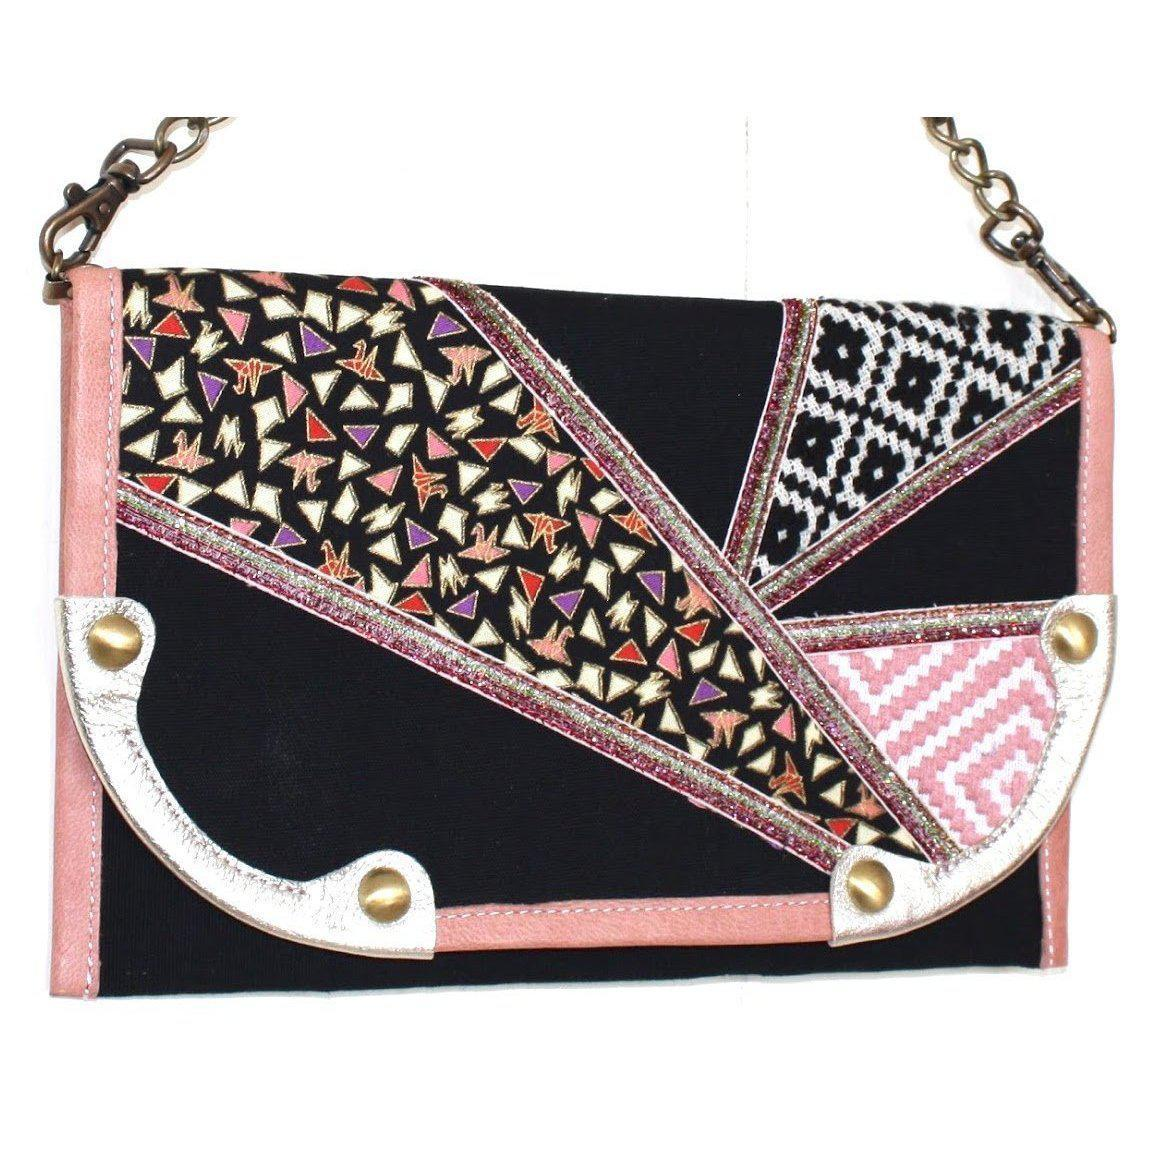 Valerie Cordier Donatello Eldorado Pink and Black Clutch Bag-Valerie Cordier-Temples and Markets